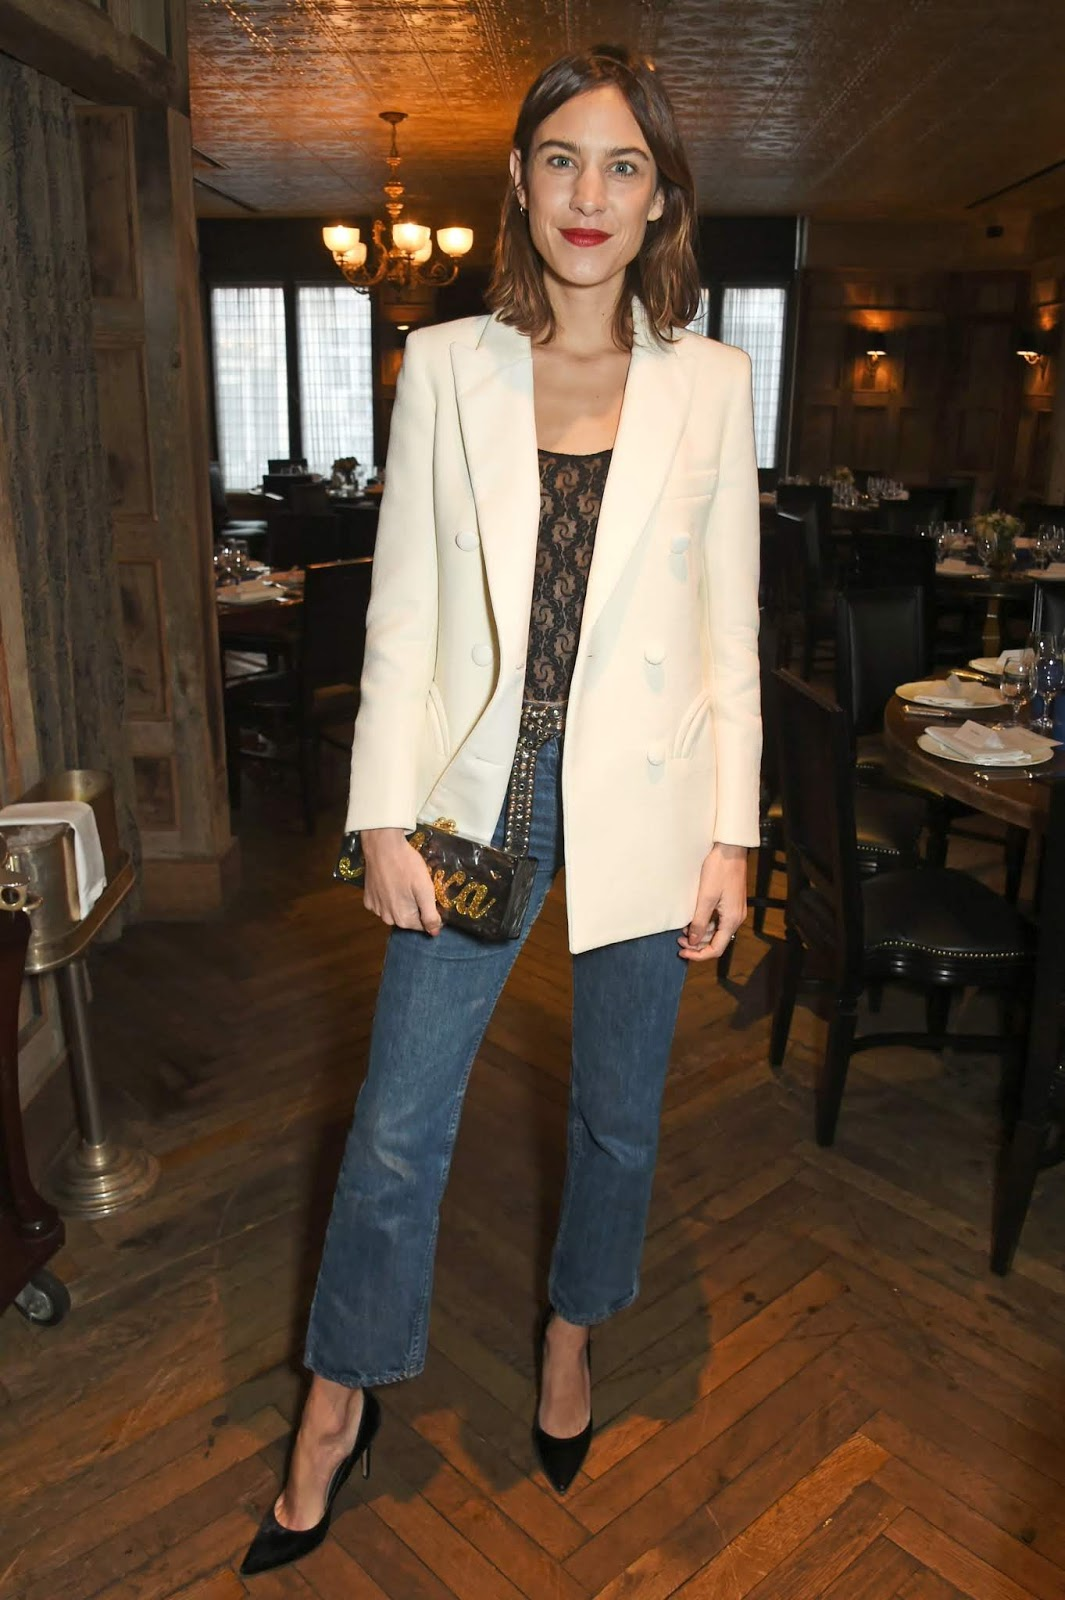 Last-Minute Holiday Party Look From Alexa Chung — White Blazer, Lace Top, Jeans, and Black Pumps